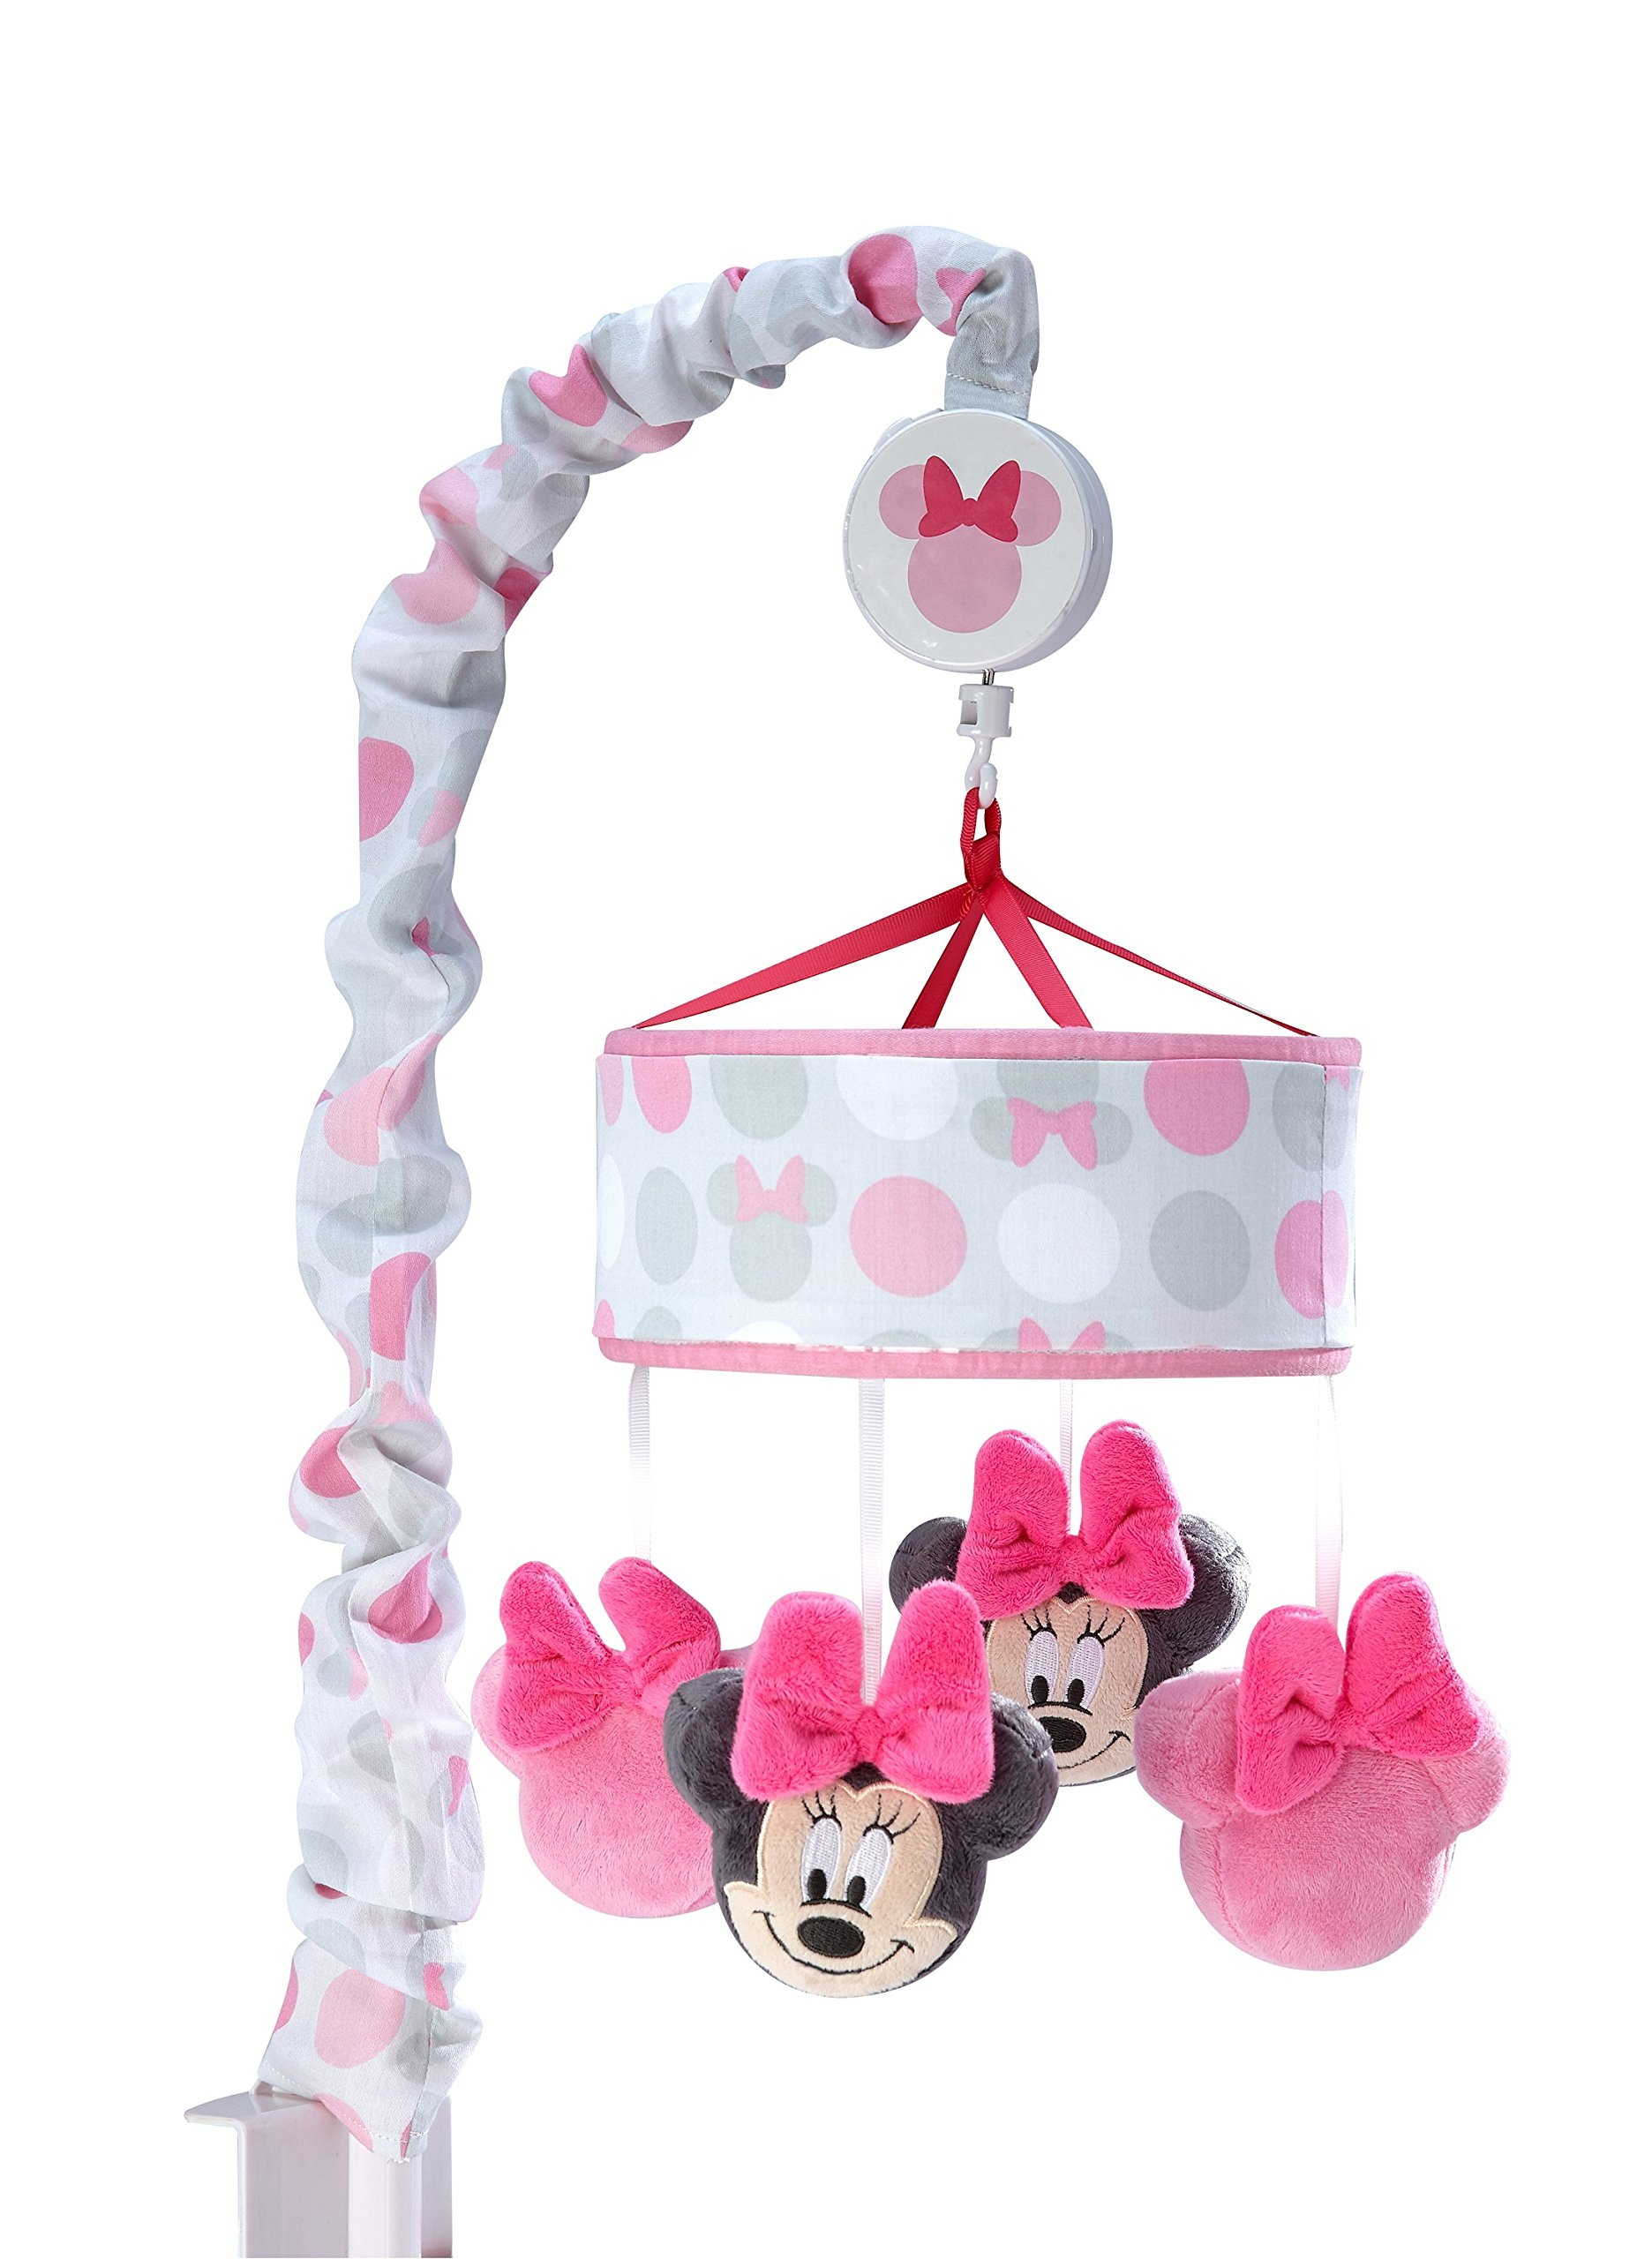 Disney Minnie Mouse Polka Dots Nursery Crib Musical Mobile, Light Pink/White/Grey/Bright Raspberry